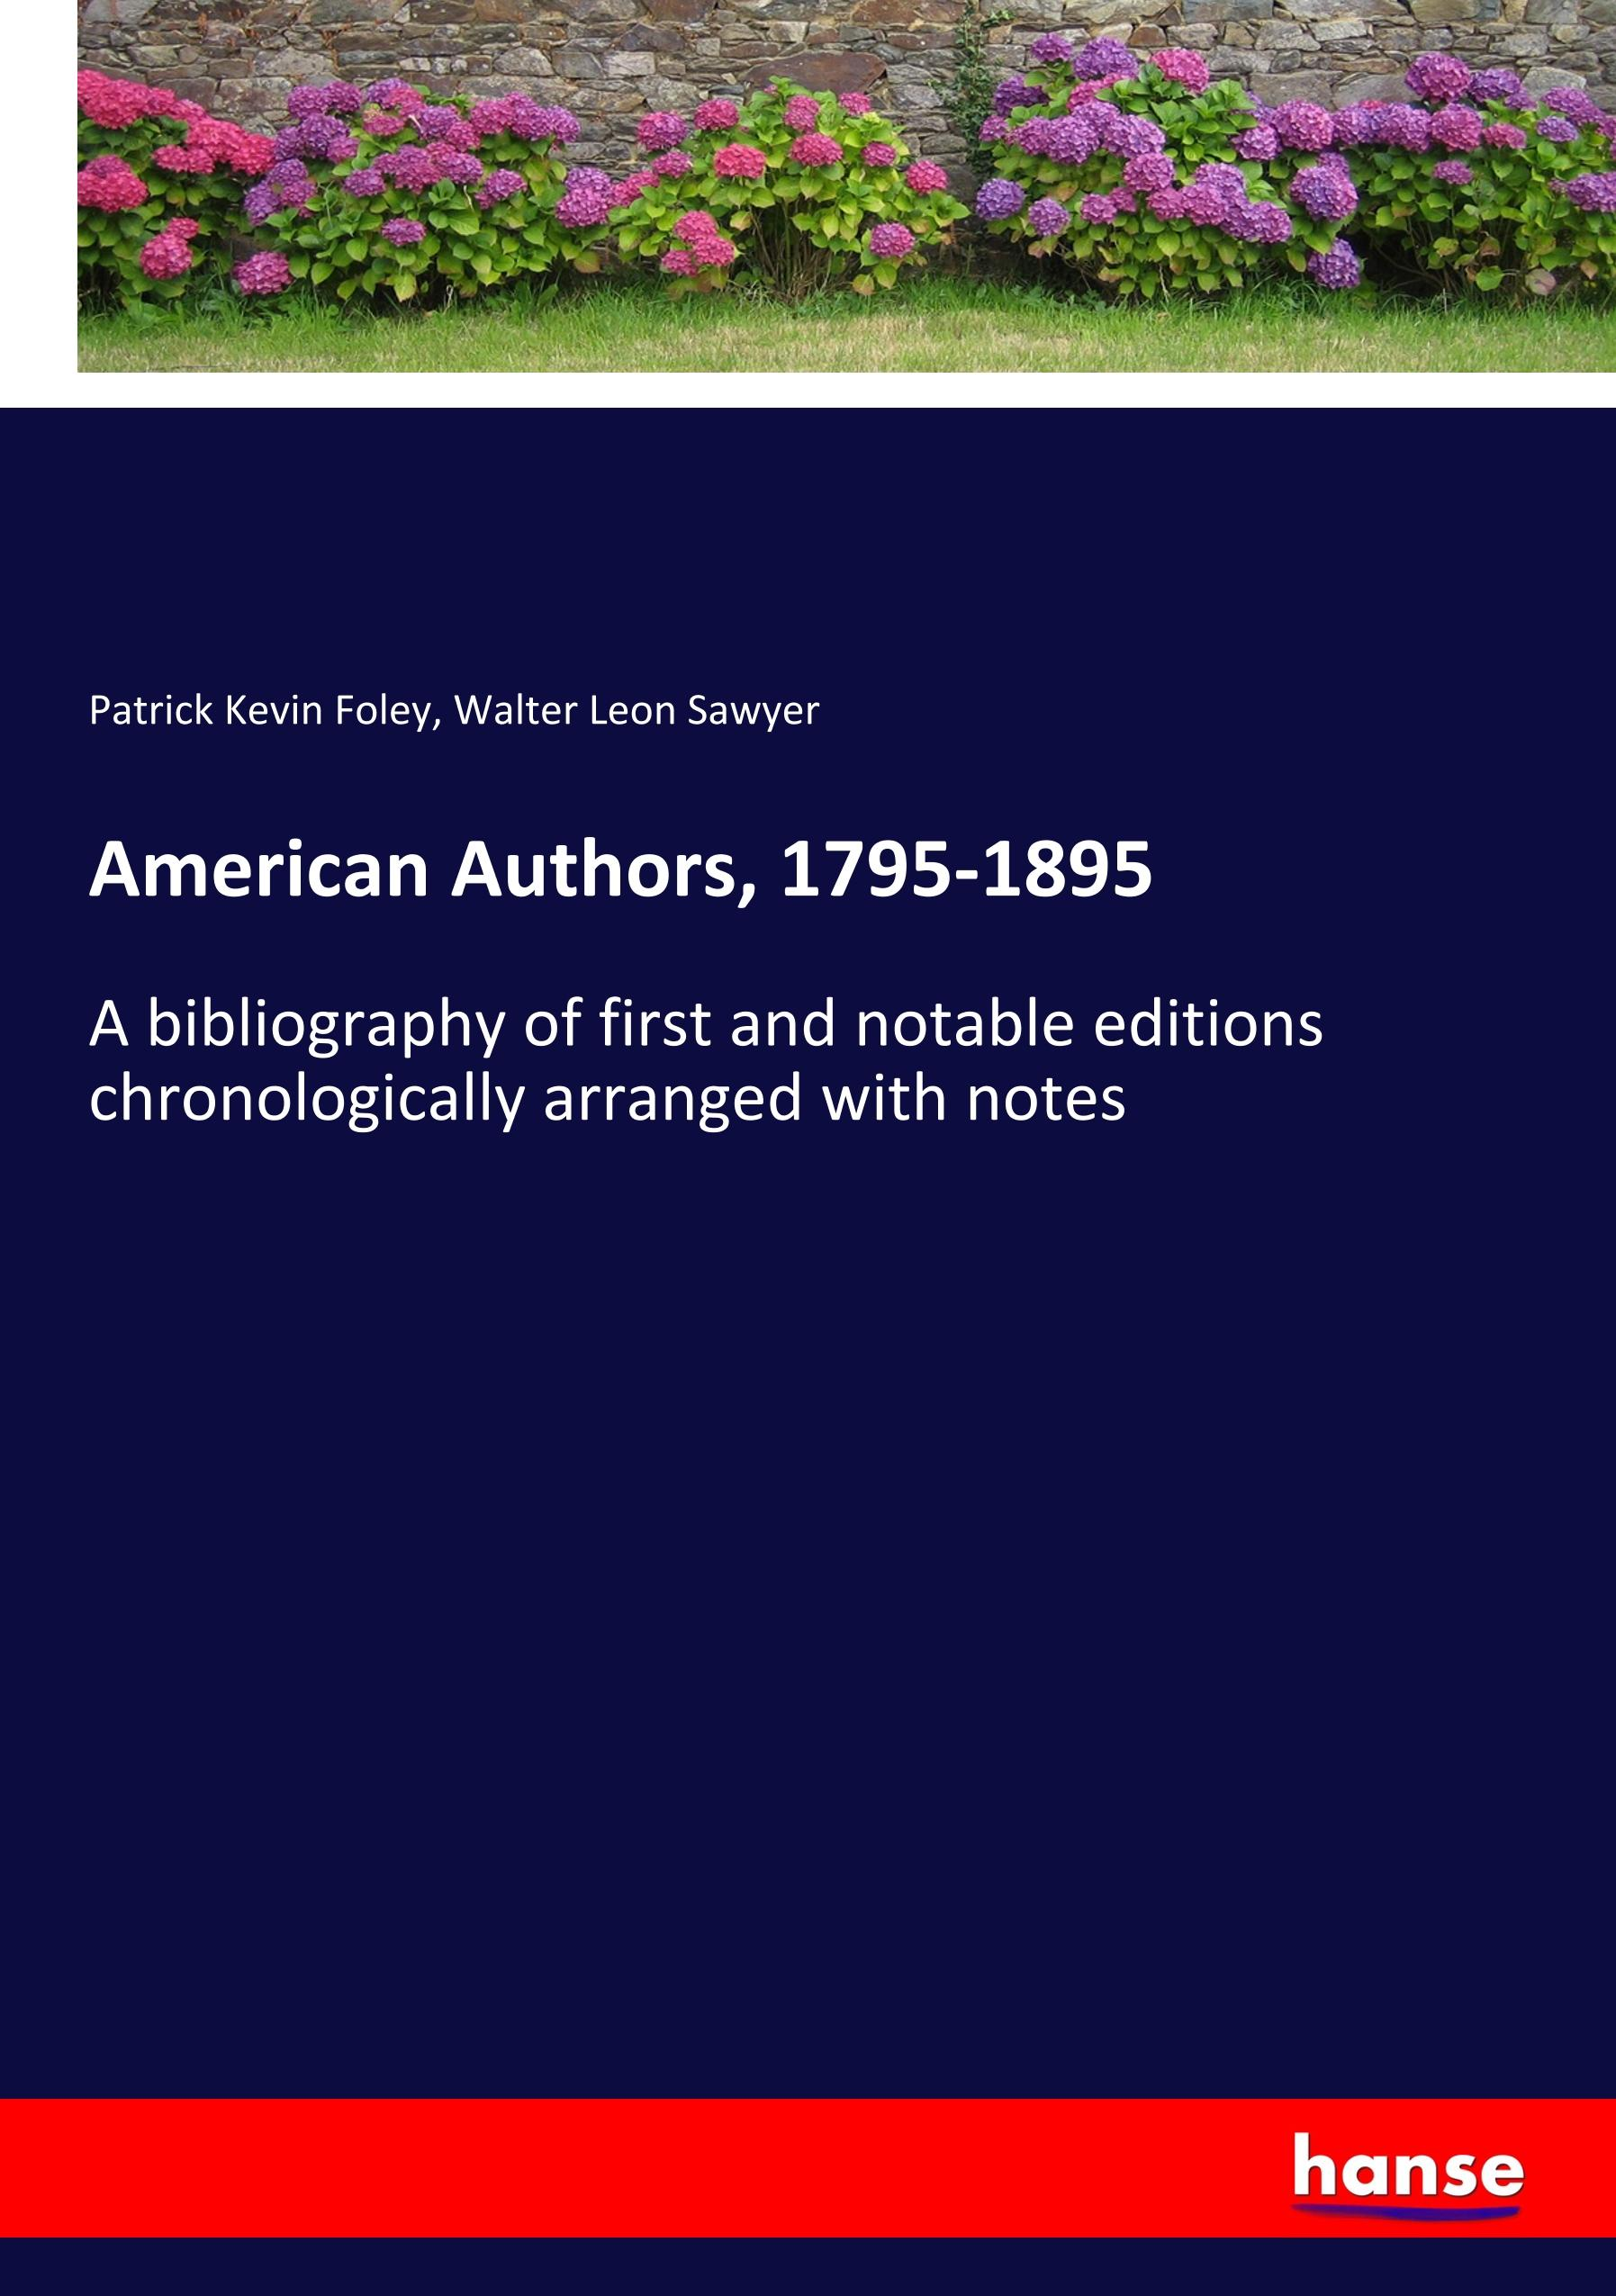 American Authors, 1795-1895  A bibliography of first and notable editions chronologically arranged with notes  Patrick Kevin Foley  Taschenbuch  Paperback  Englisch  2019 - Foley, Patrick Kevin